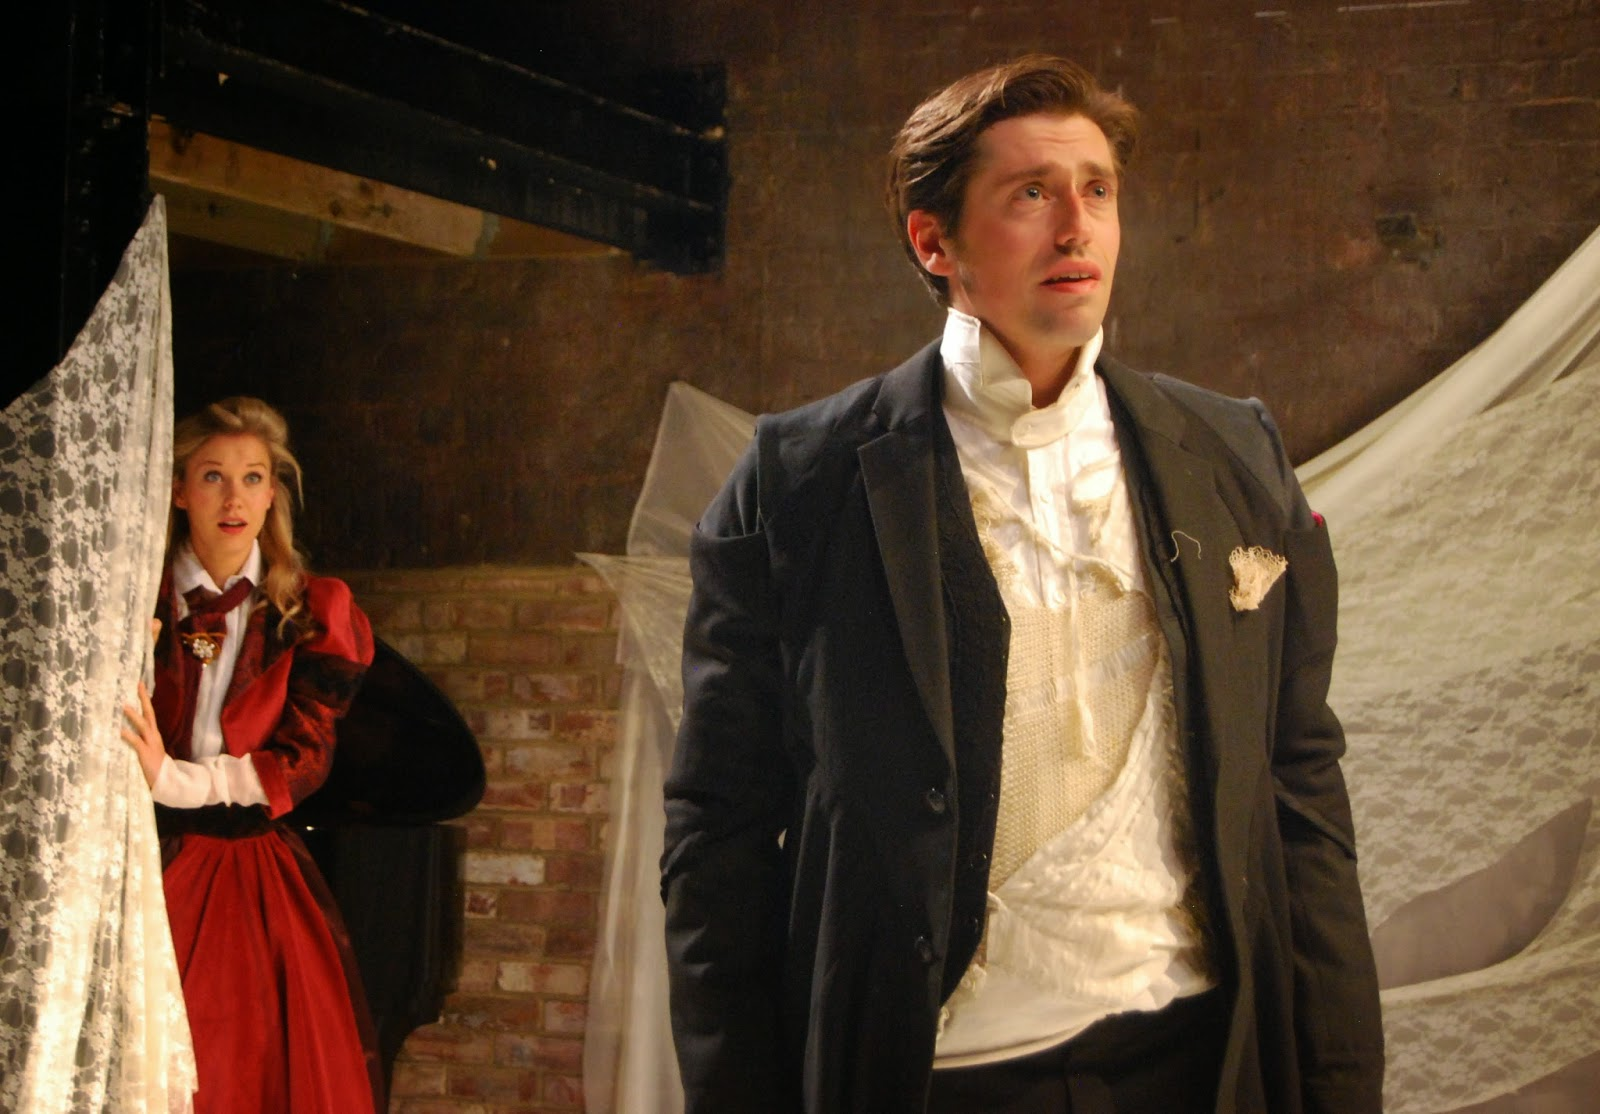 Lucy Knight as Sophie and Adam Tunnicliffe as Werther in Massenet's Werther at the Grimeborn Festival at Arcola Theatre